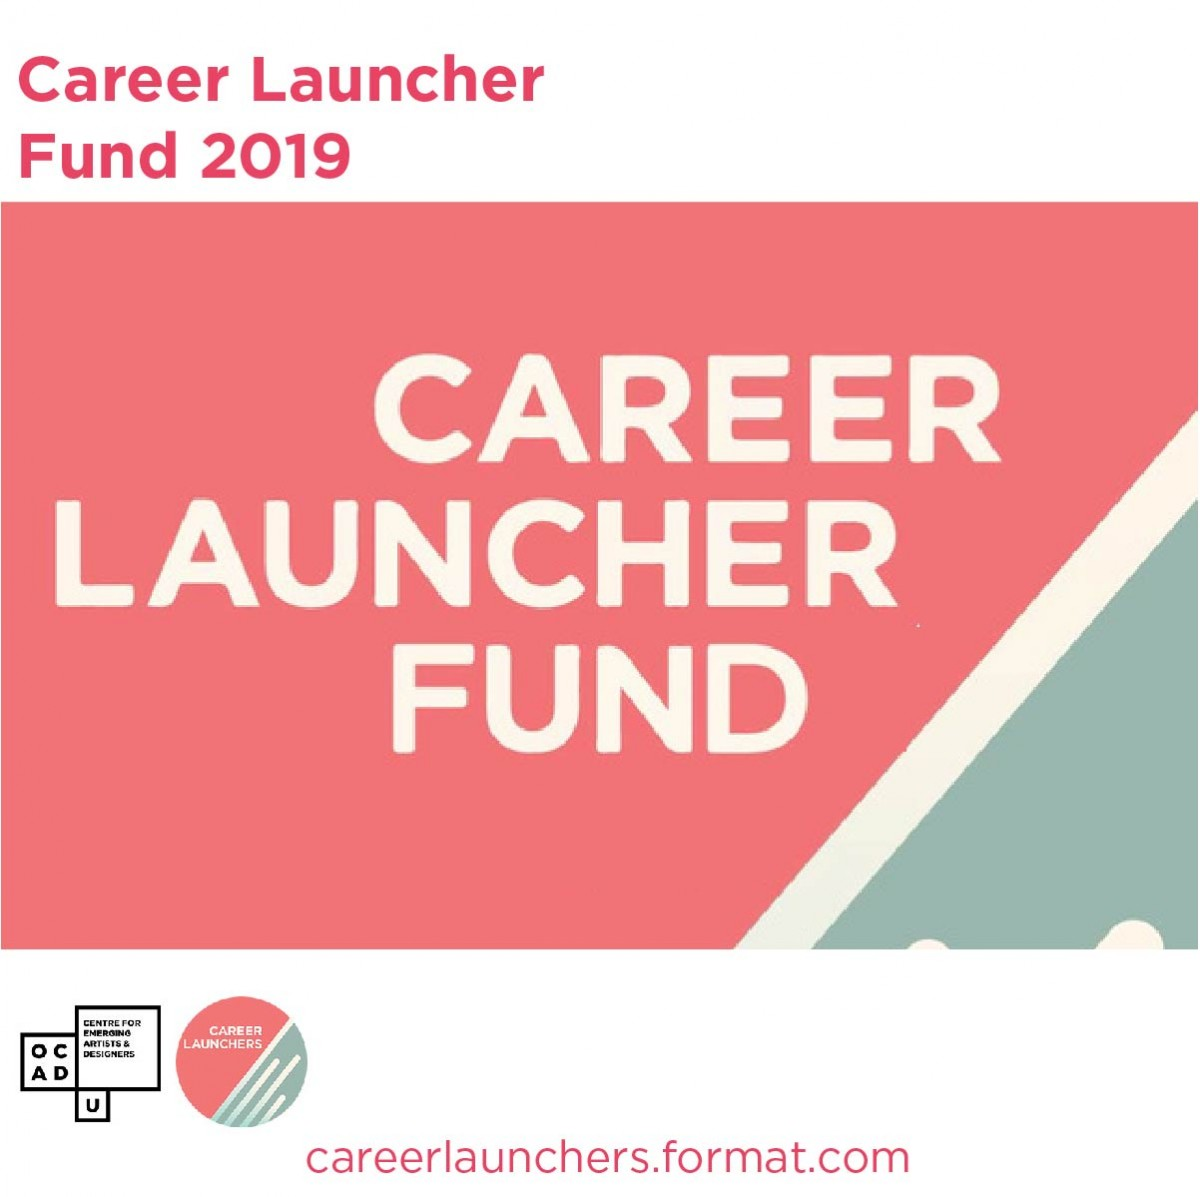 Call for Applications - Career Launcher Fund